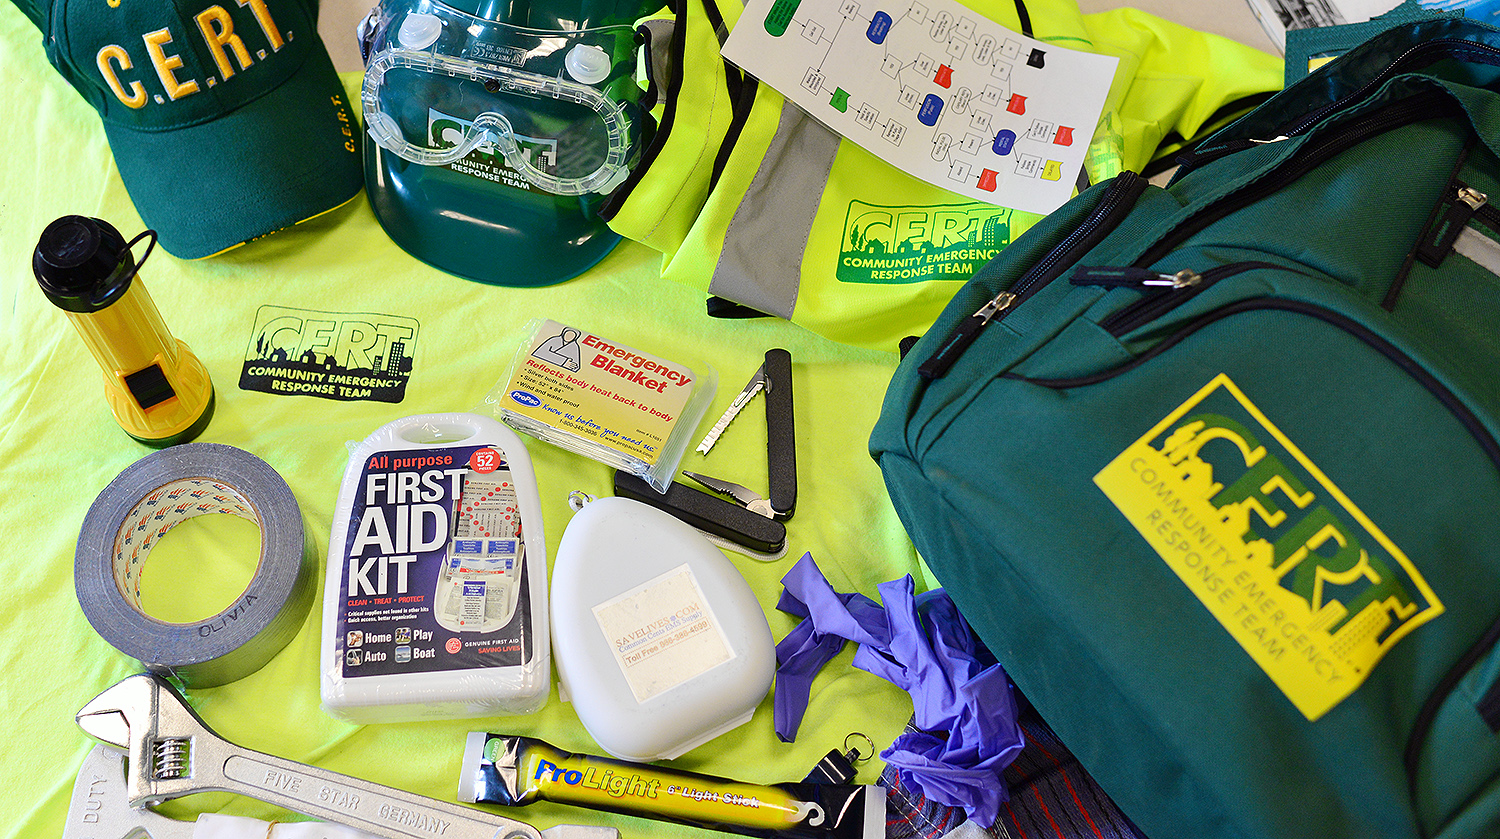 C-CERT members are equipped with a supply backpack, which includes a helmet, reflective vest, safety goggles, first-aid kit, emergency blanket, CPR kit, light sticks, gloves, tape, tools, knives and more.